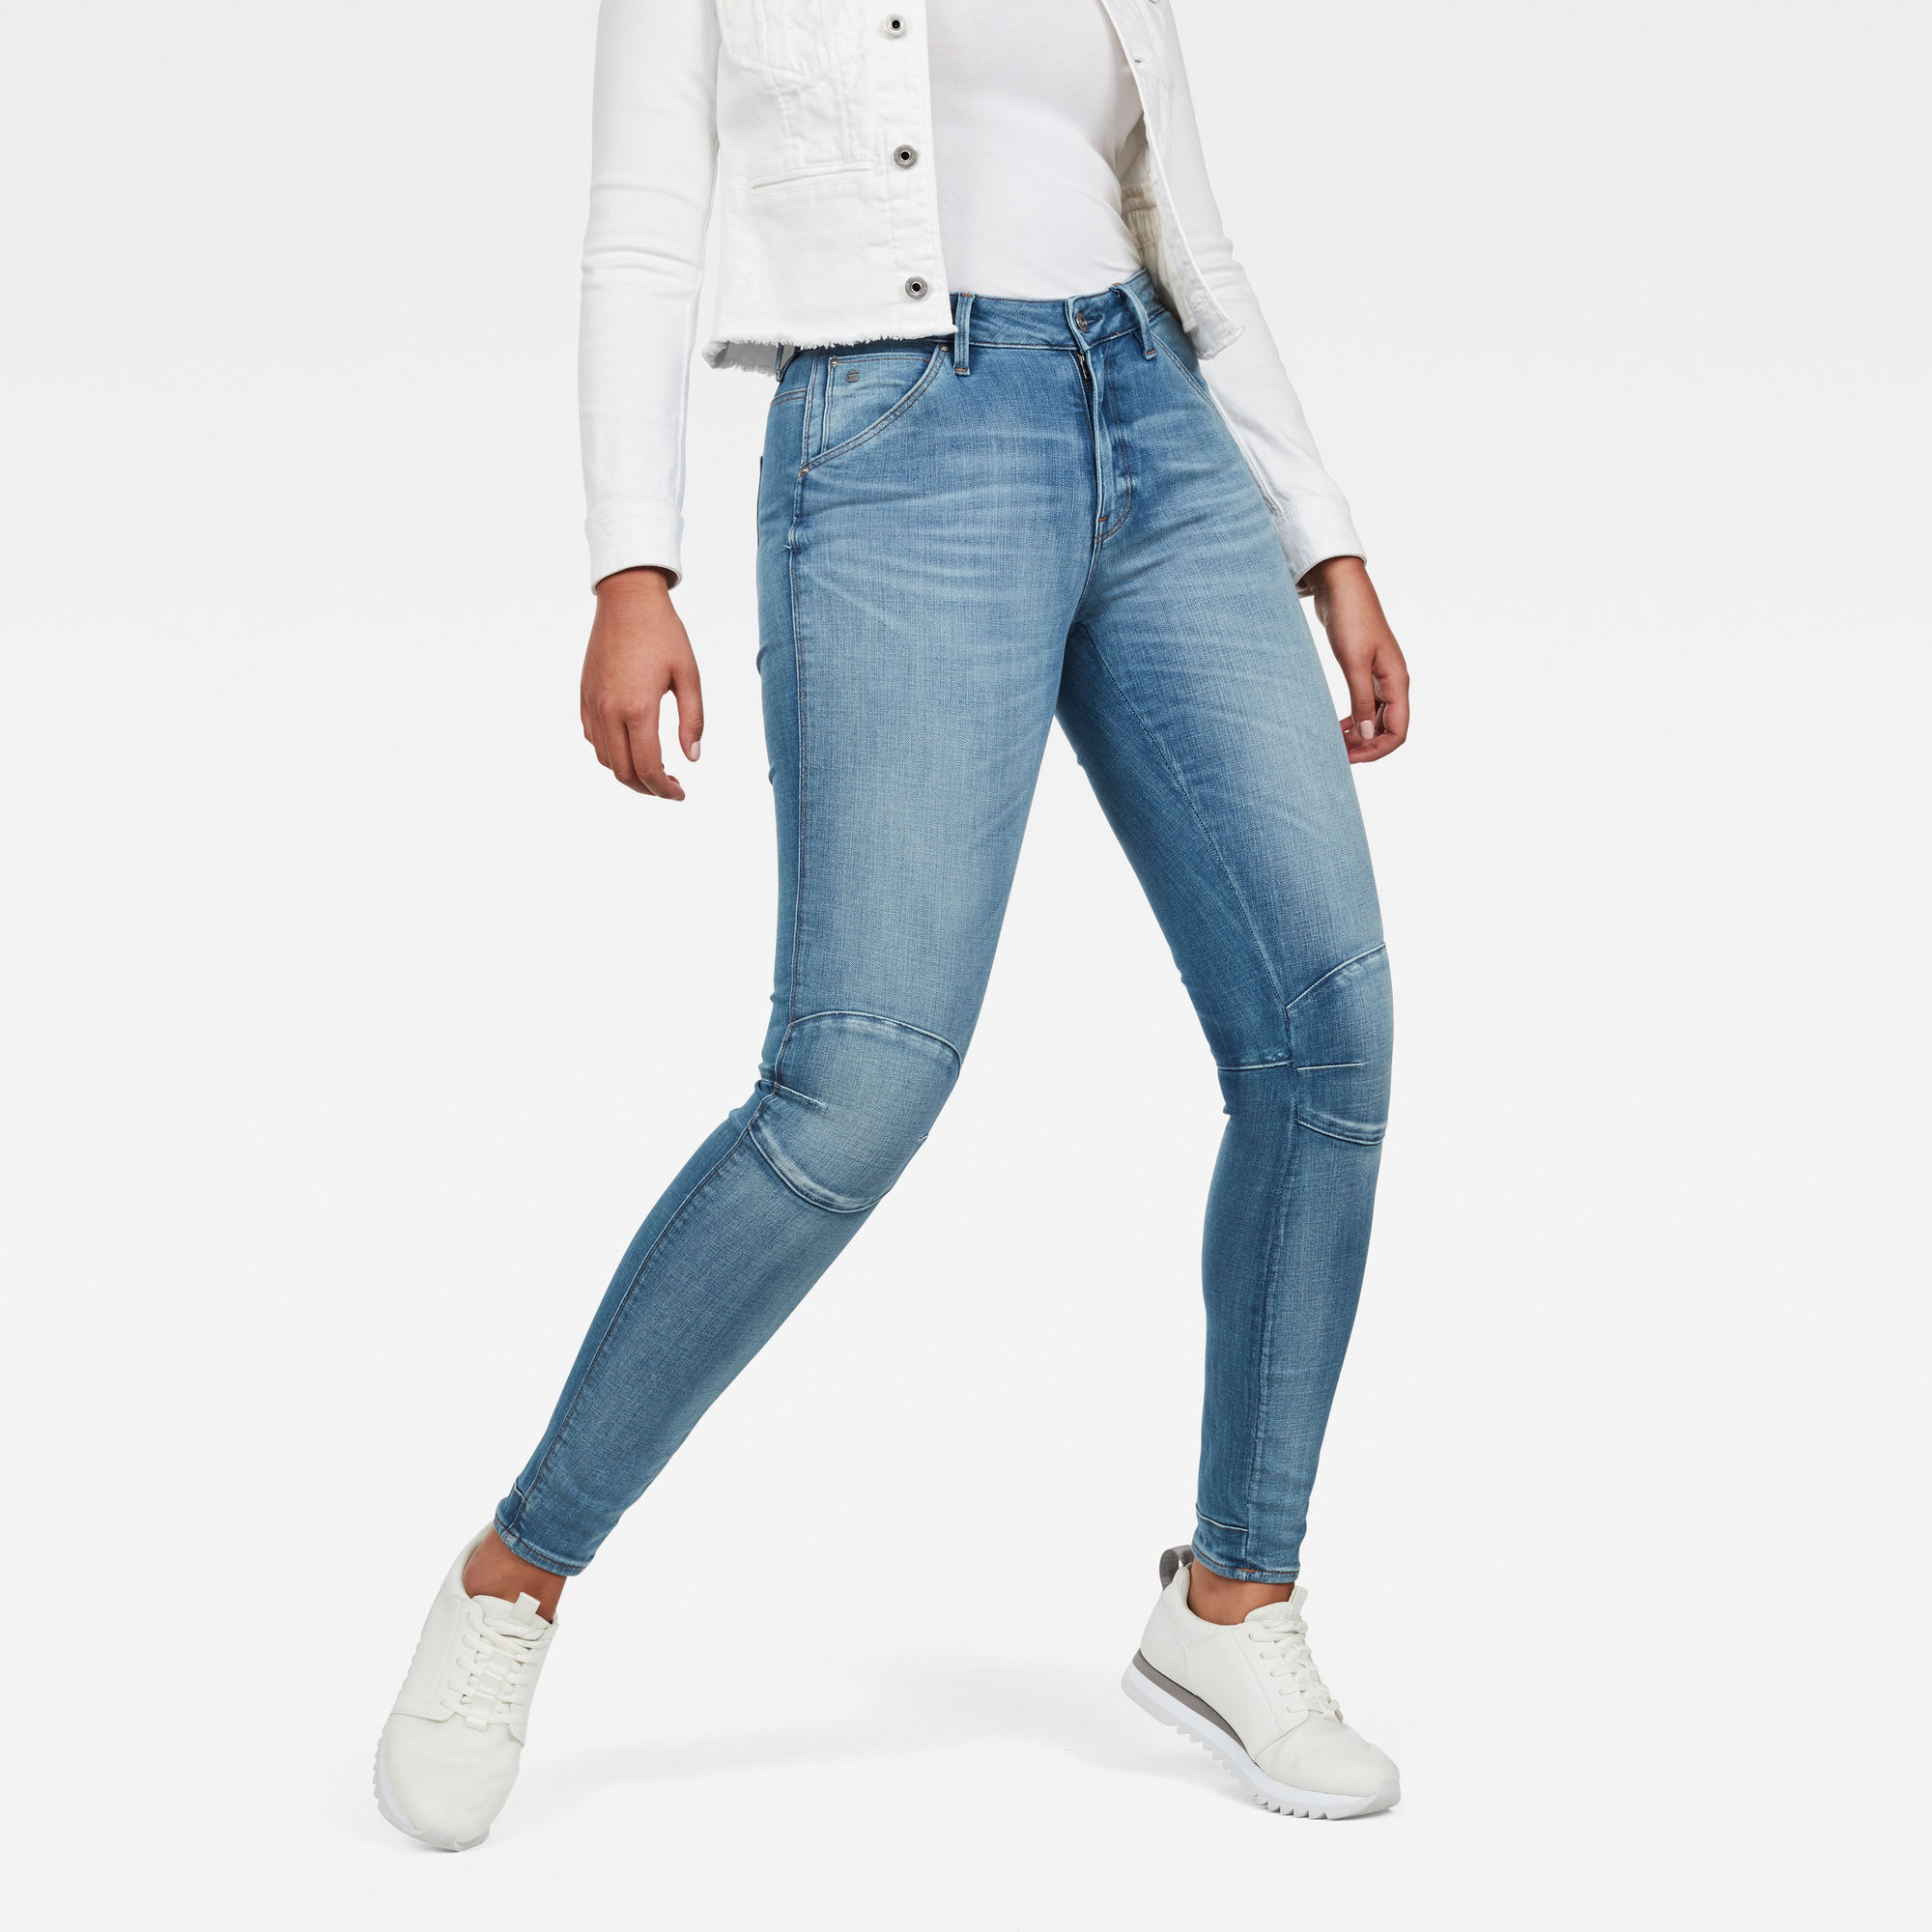 Image of G Star Raw 5622 G-Star Shape High Waist Super Skinny Jeans